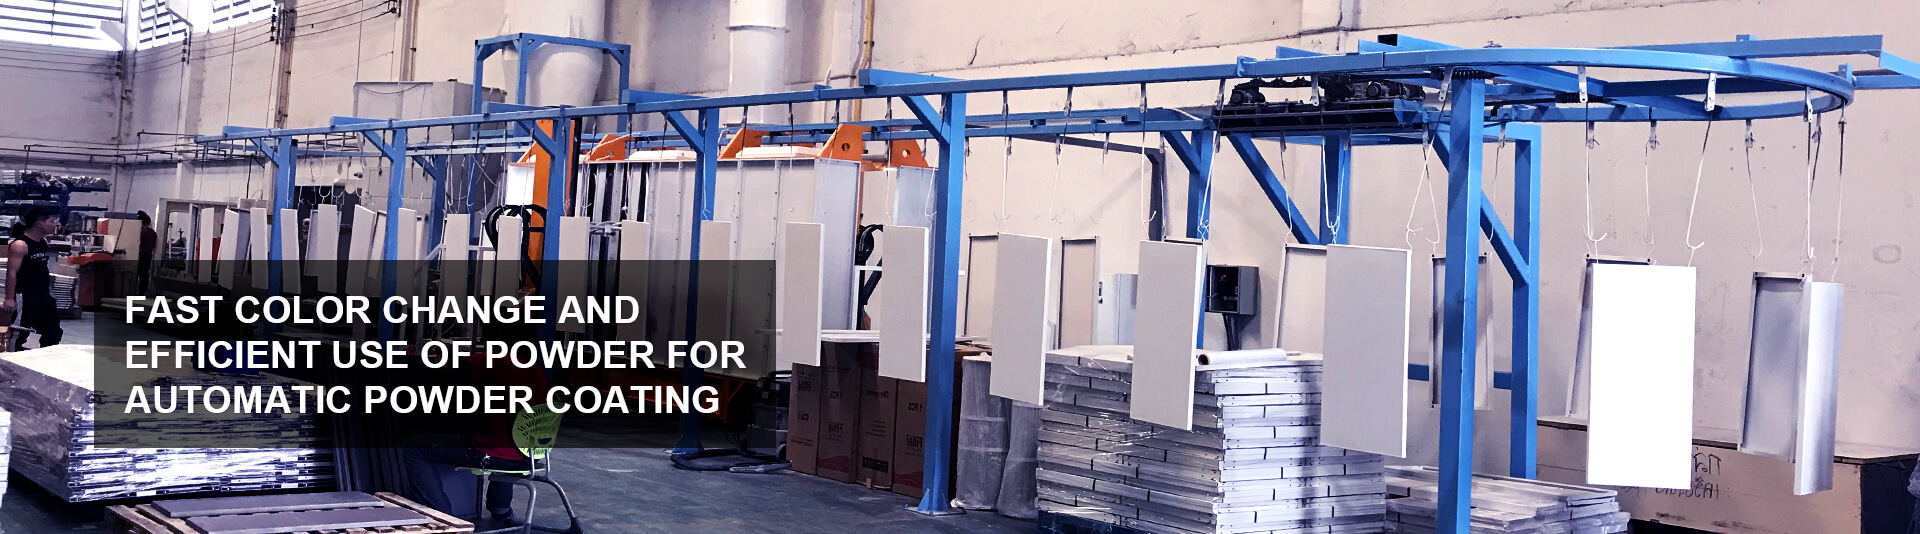 Powder Coating Application Video